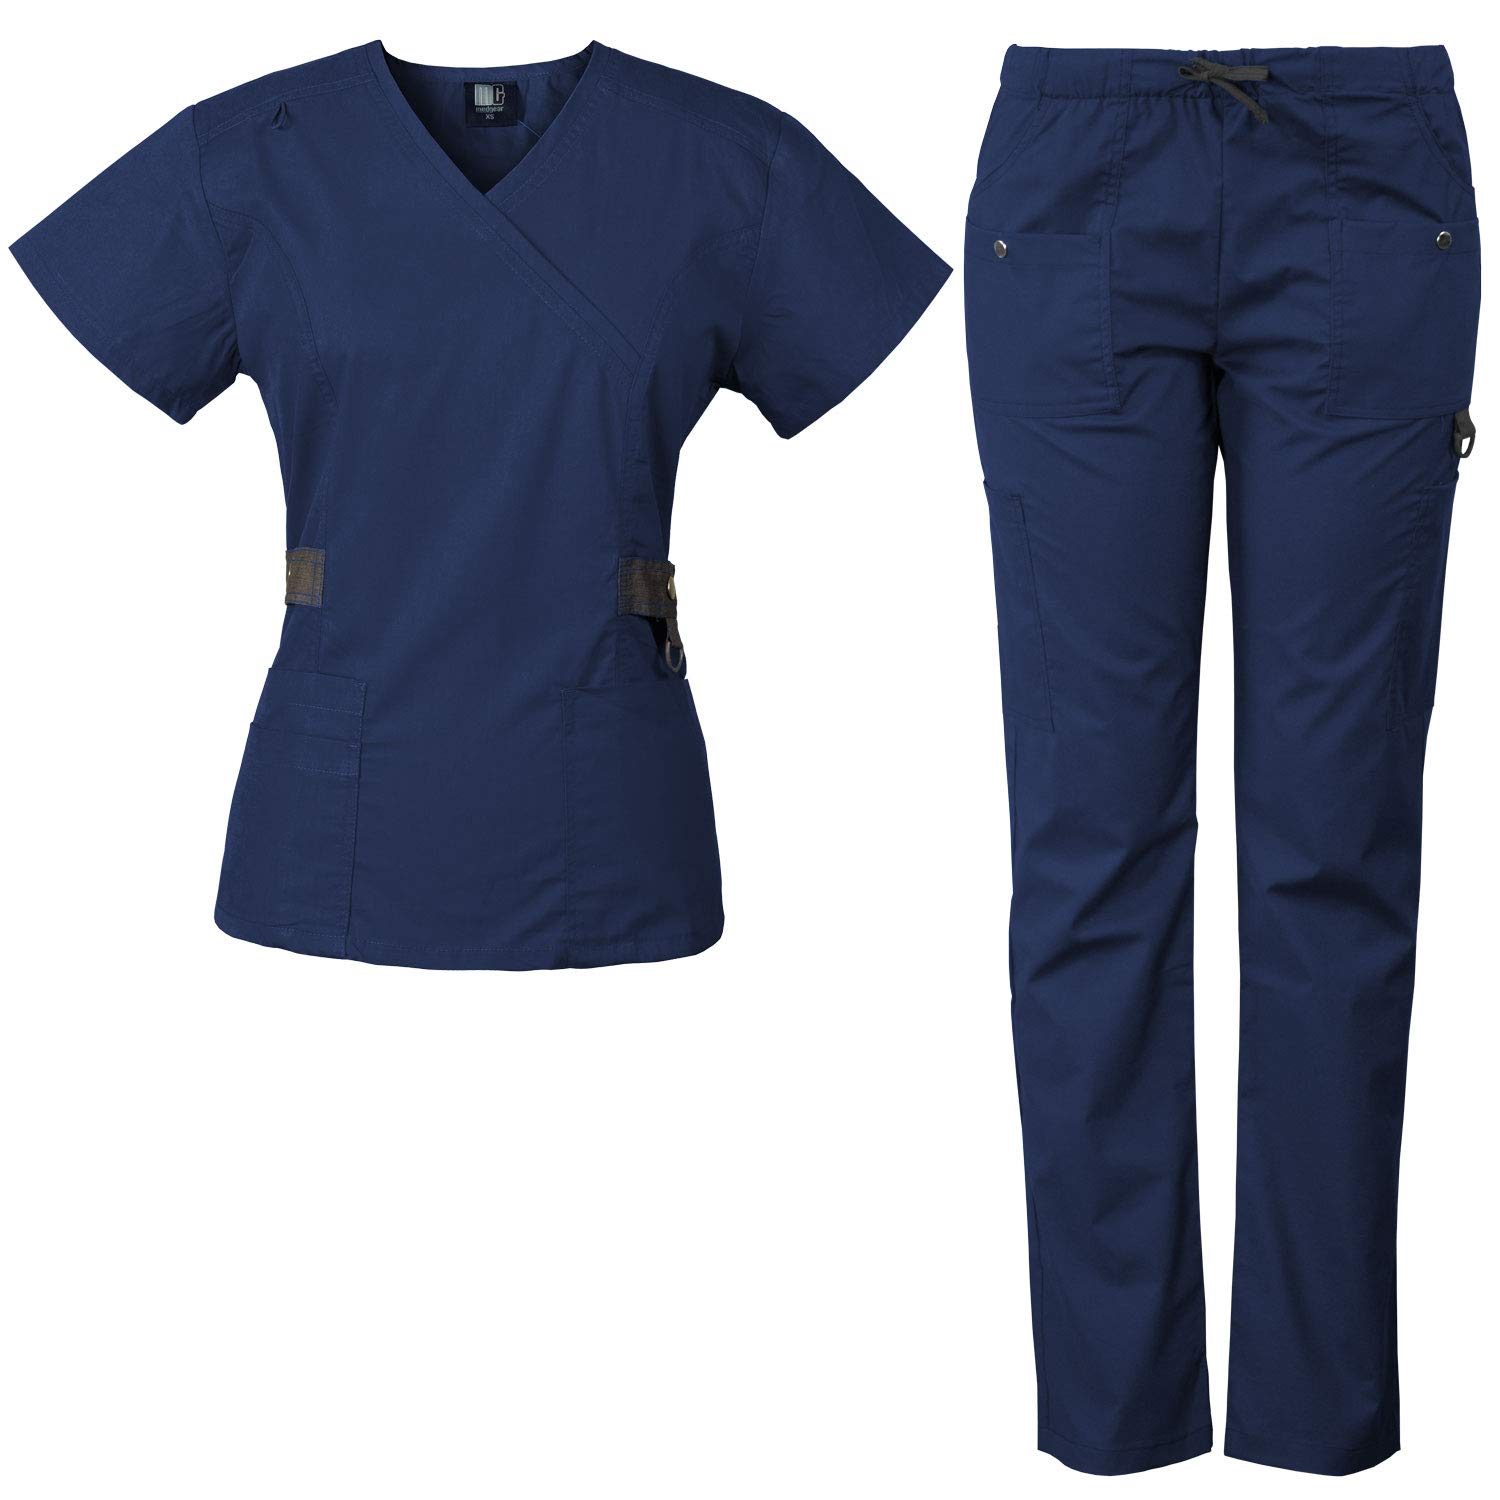 Medgear 12-Pocket Women's Scrub Set with Silver Snap Detail & Contrast Trim (Navy, 2XL)